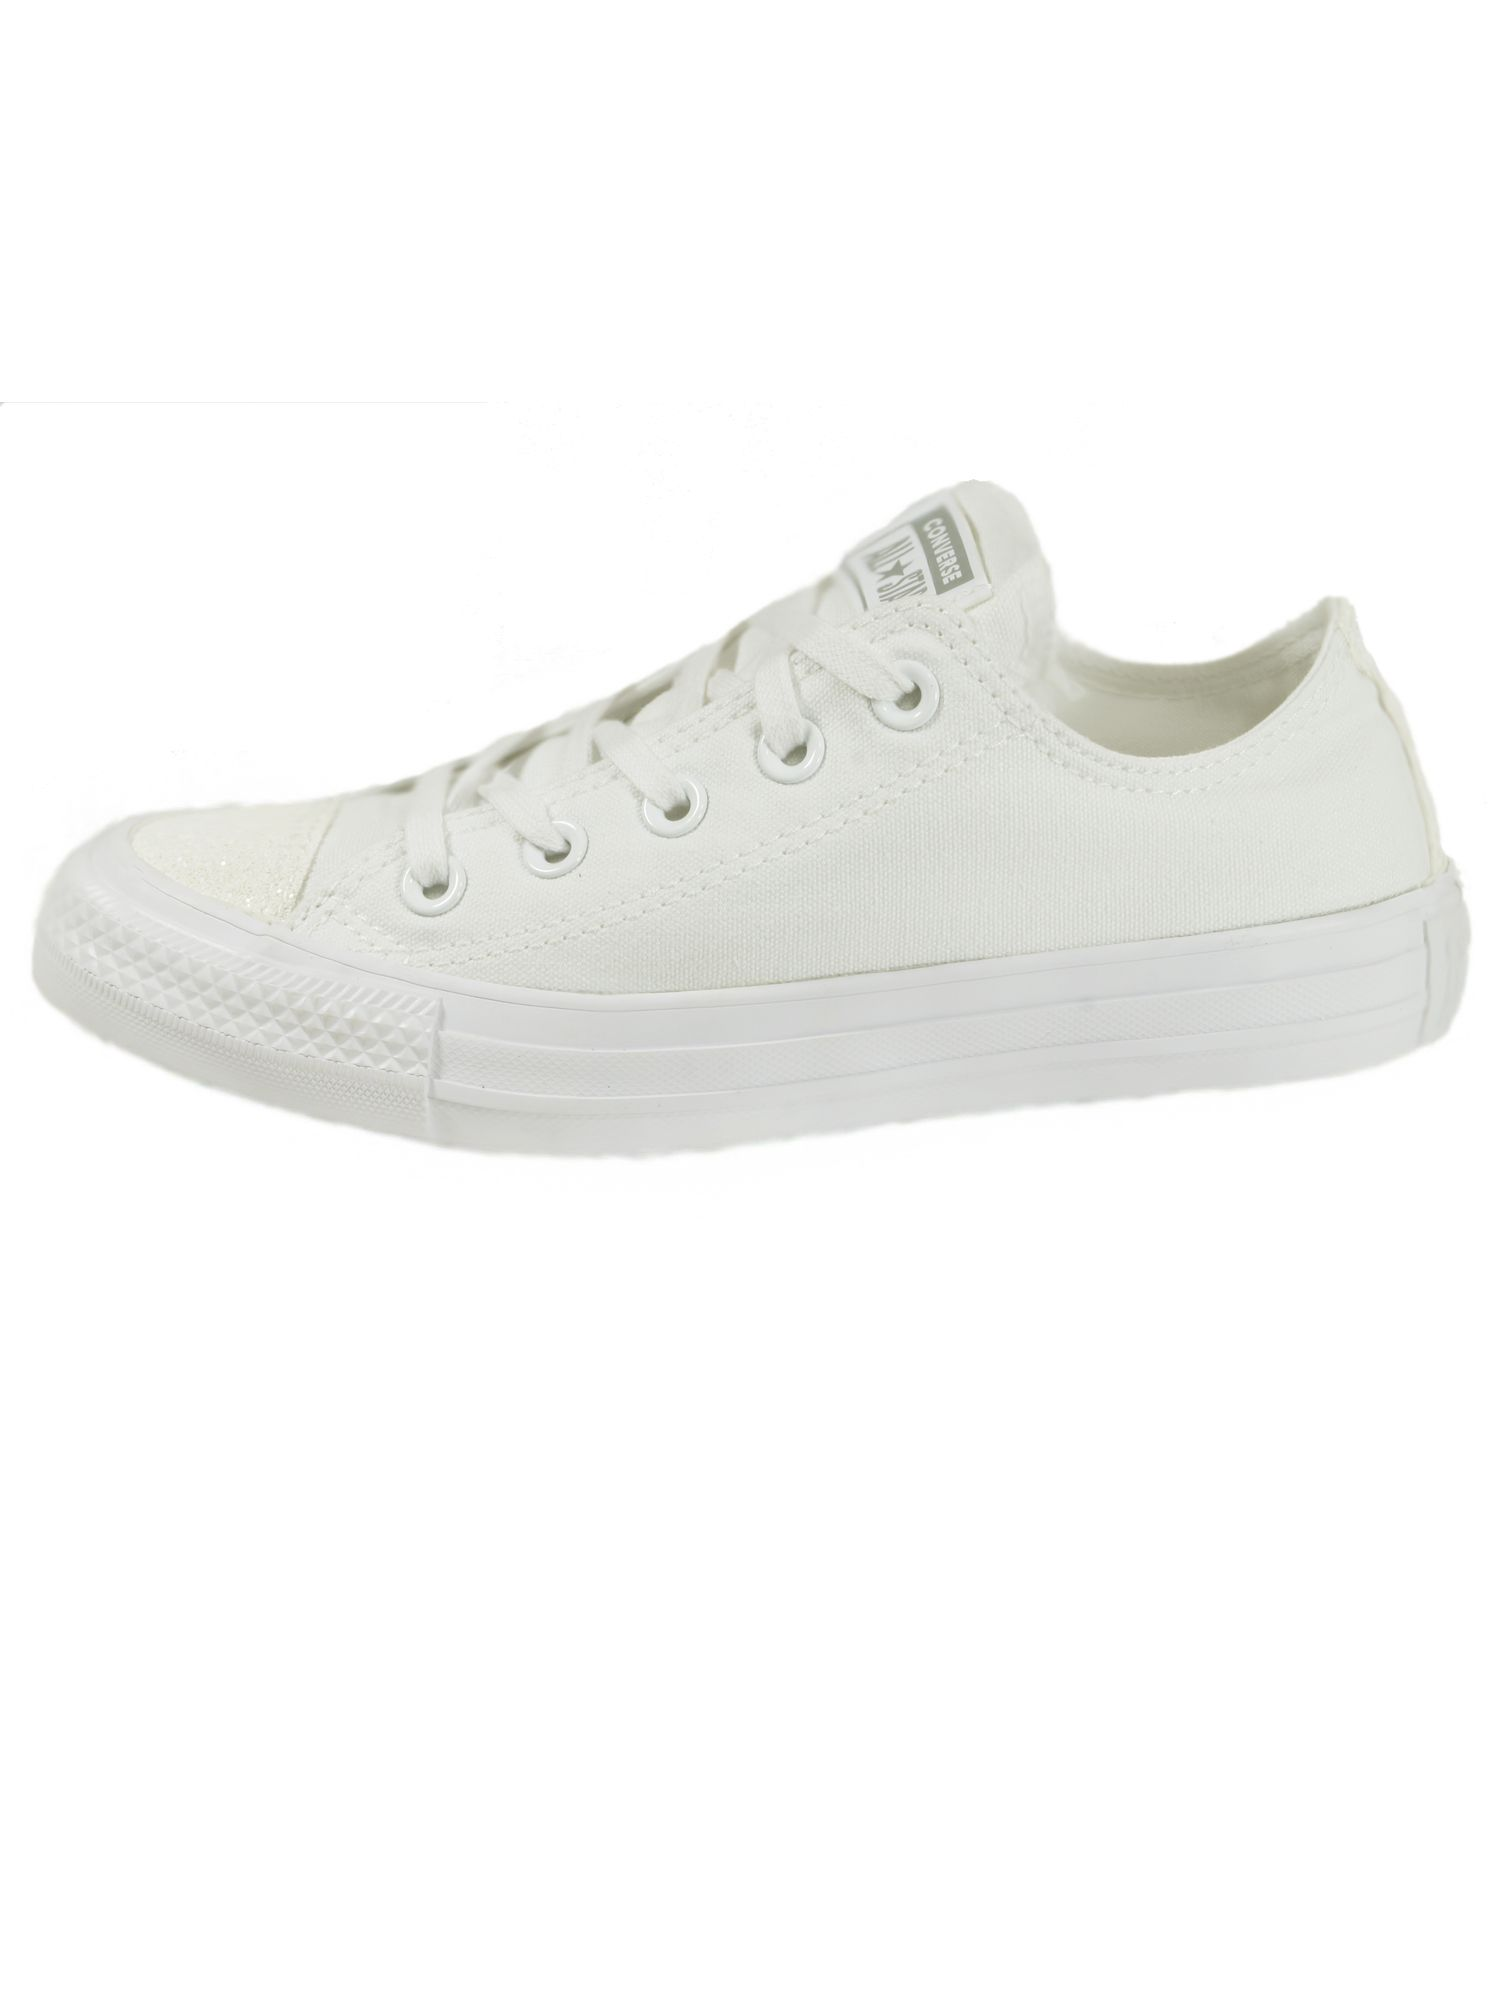 Converse Damen Schuhe CT All Star Ox Weiß Leinen Sneakers Gr. 36,5 |  starlabels outdoor lifestyle leder